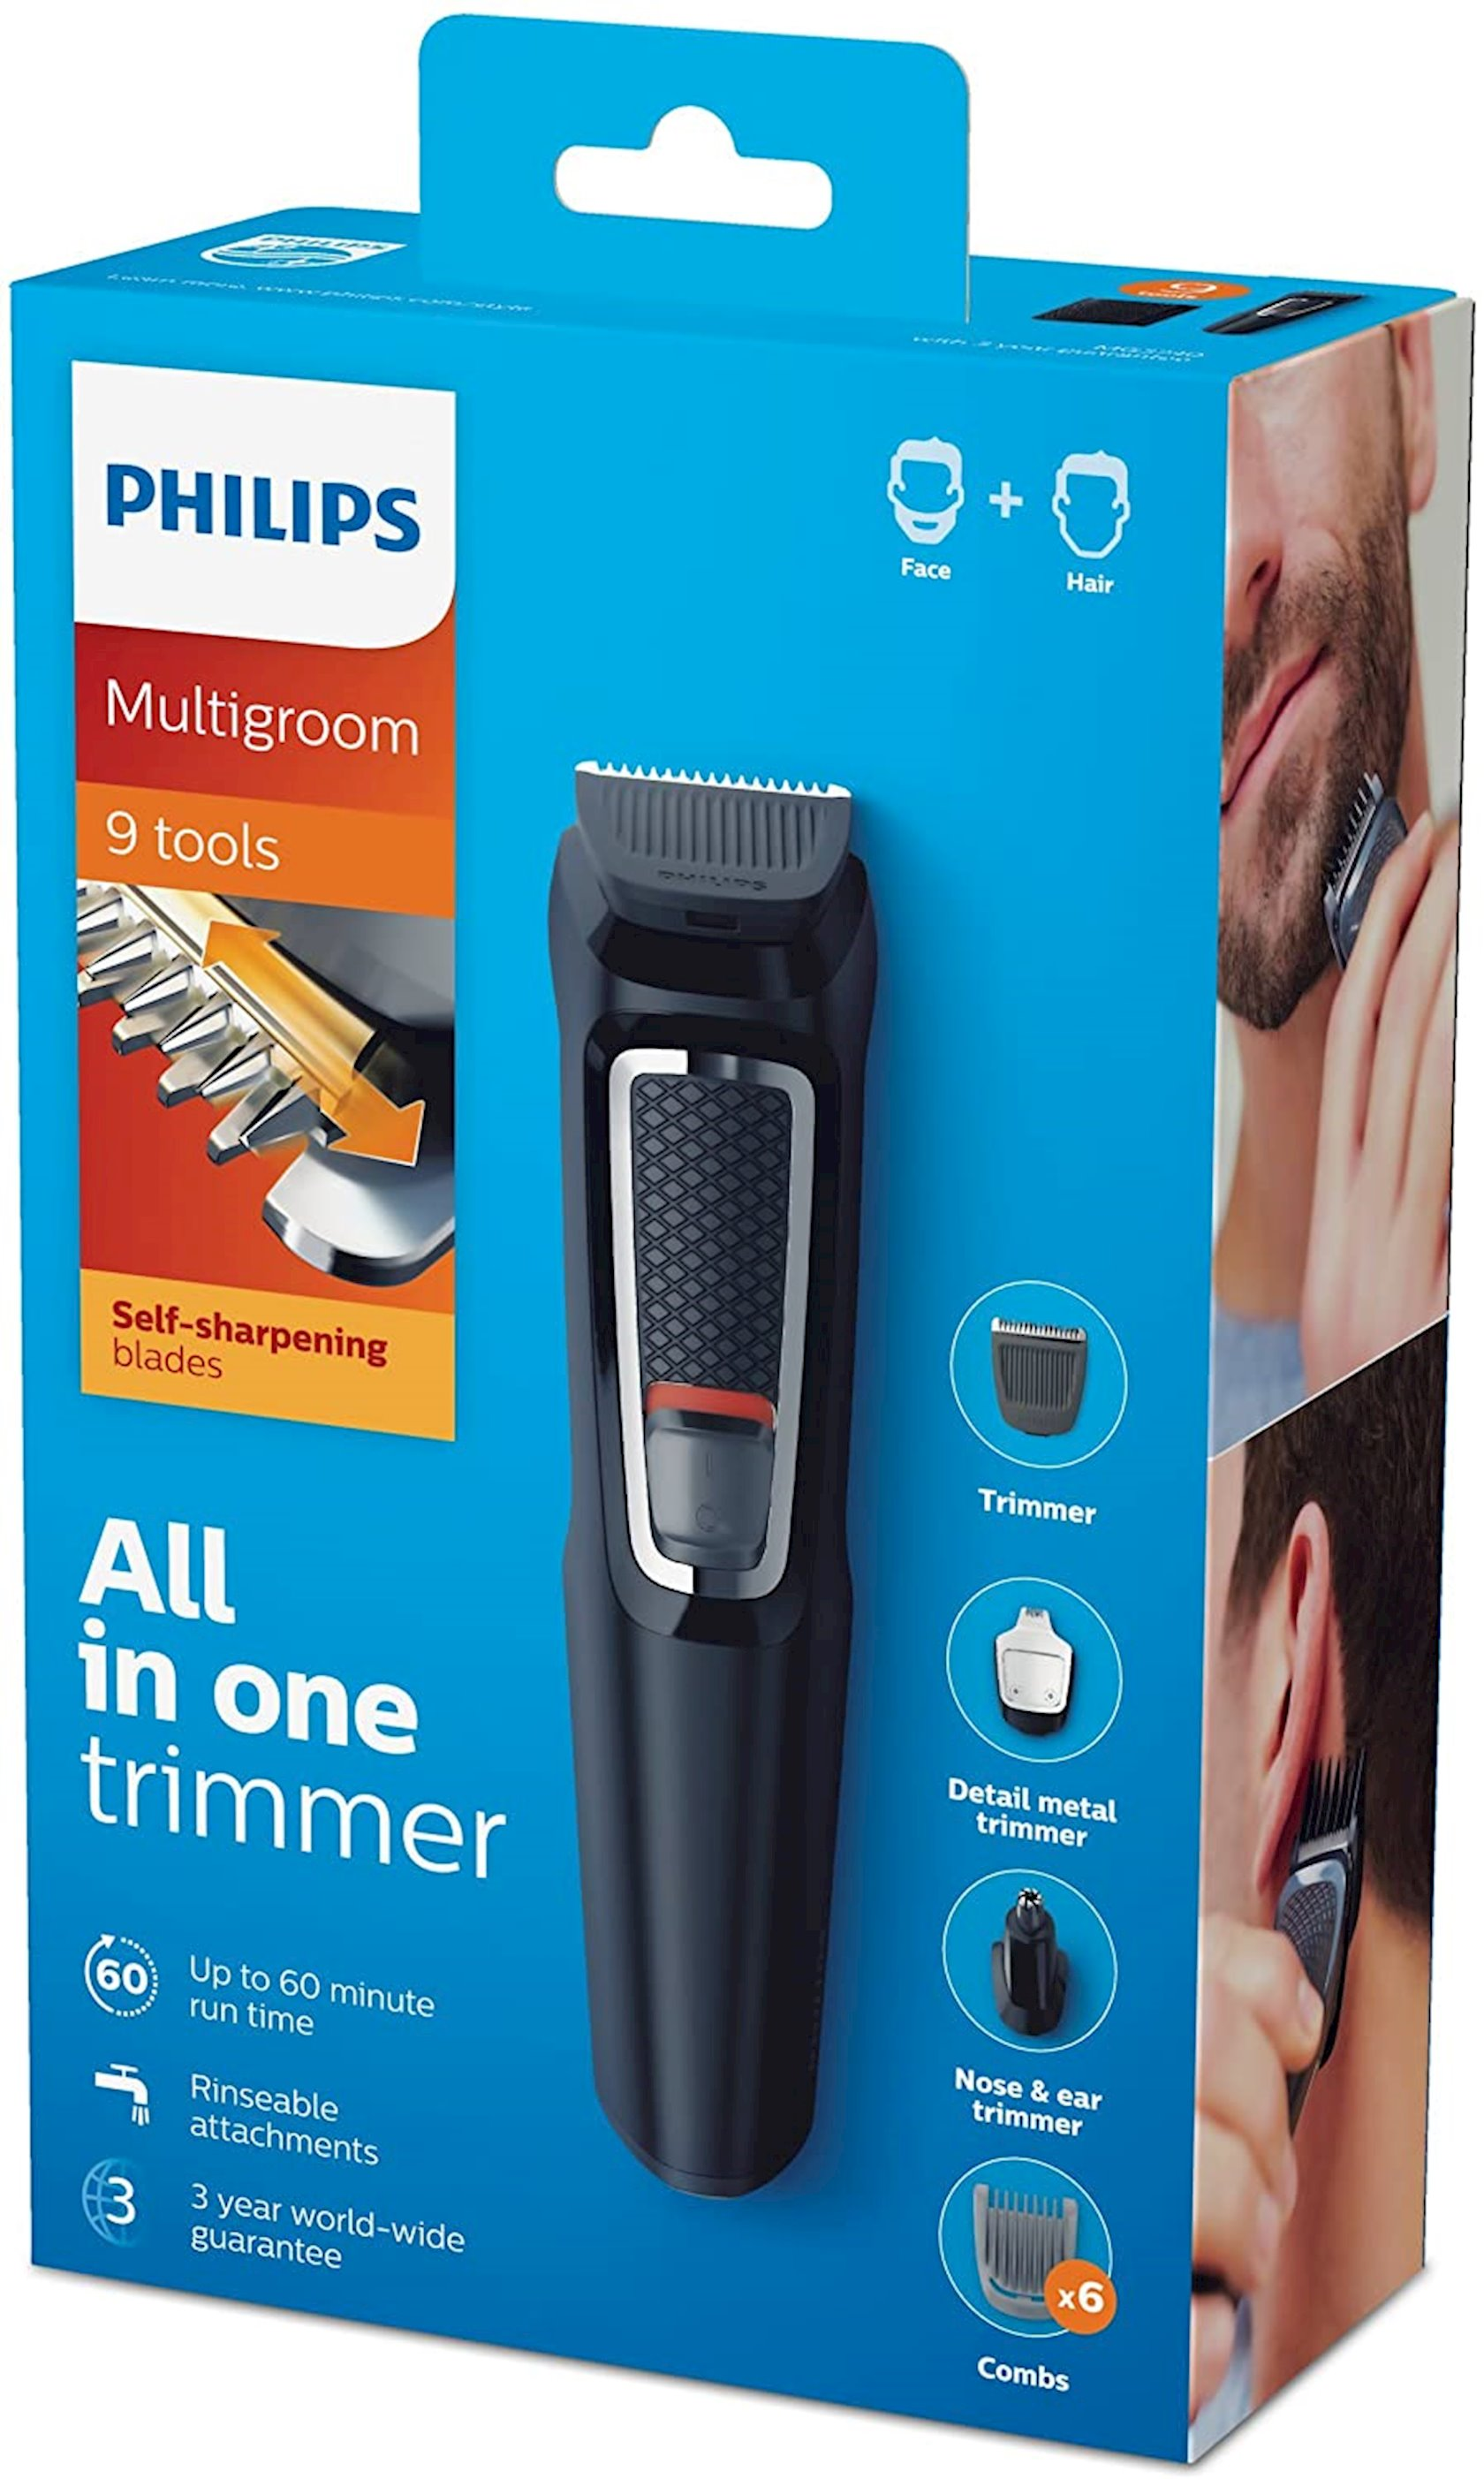 Trimmer Philips MG3740/15